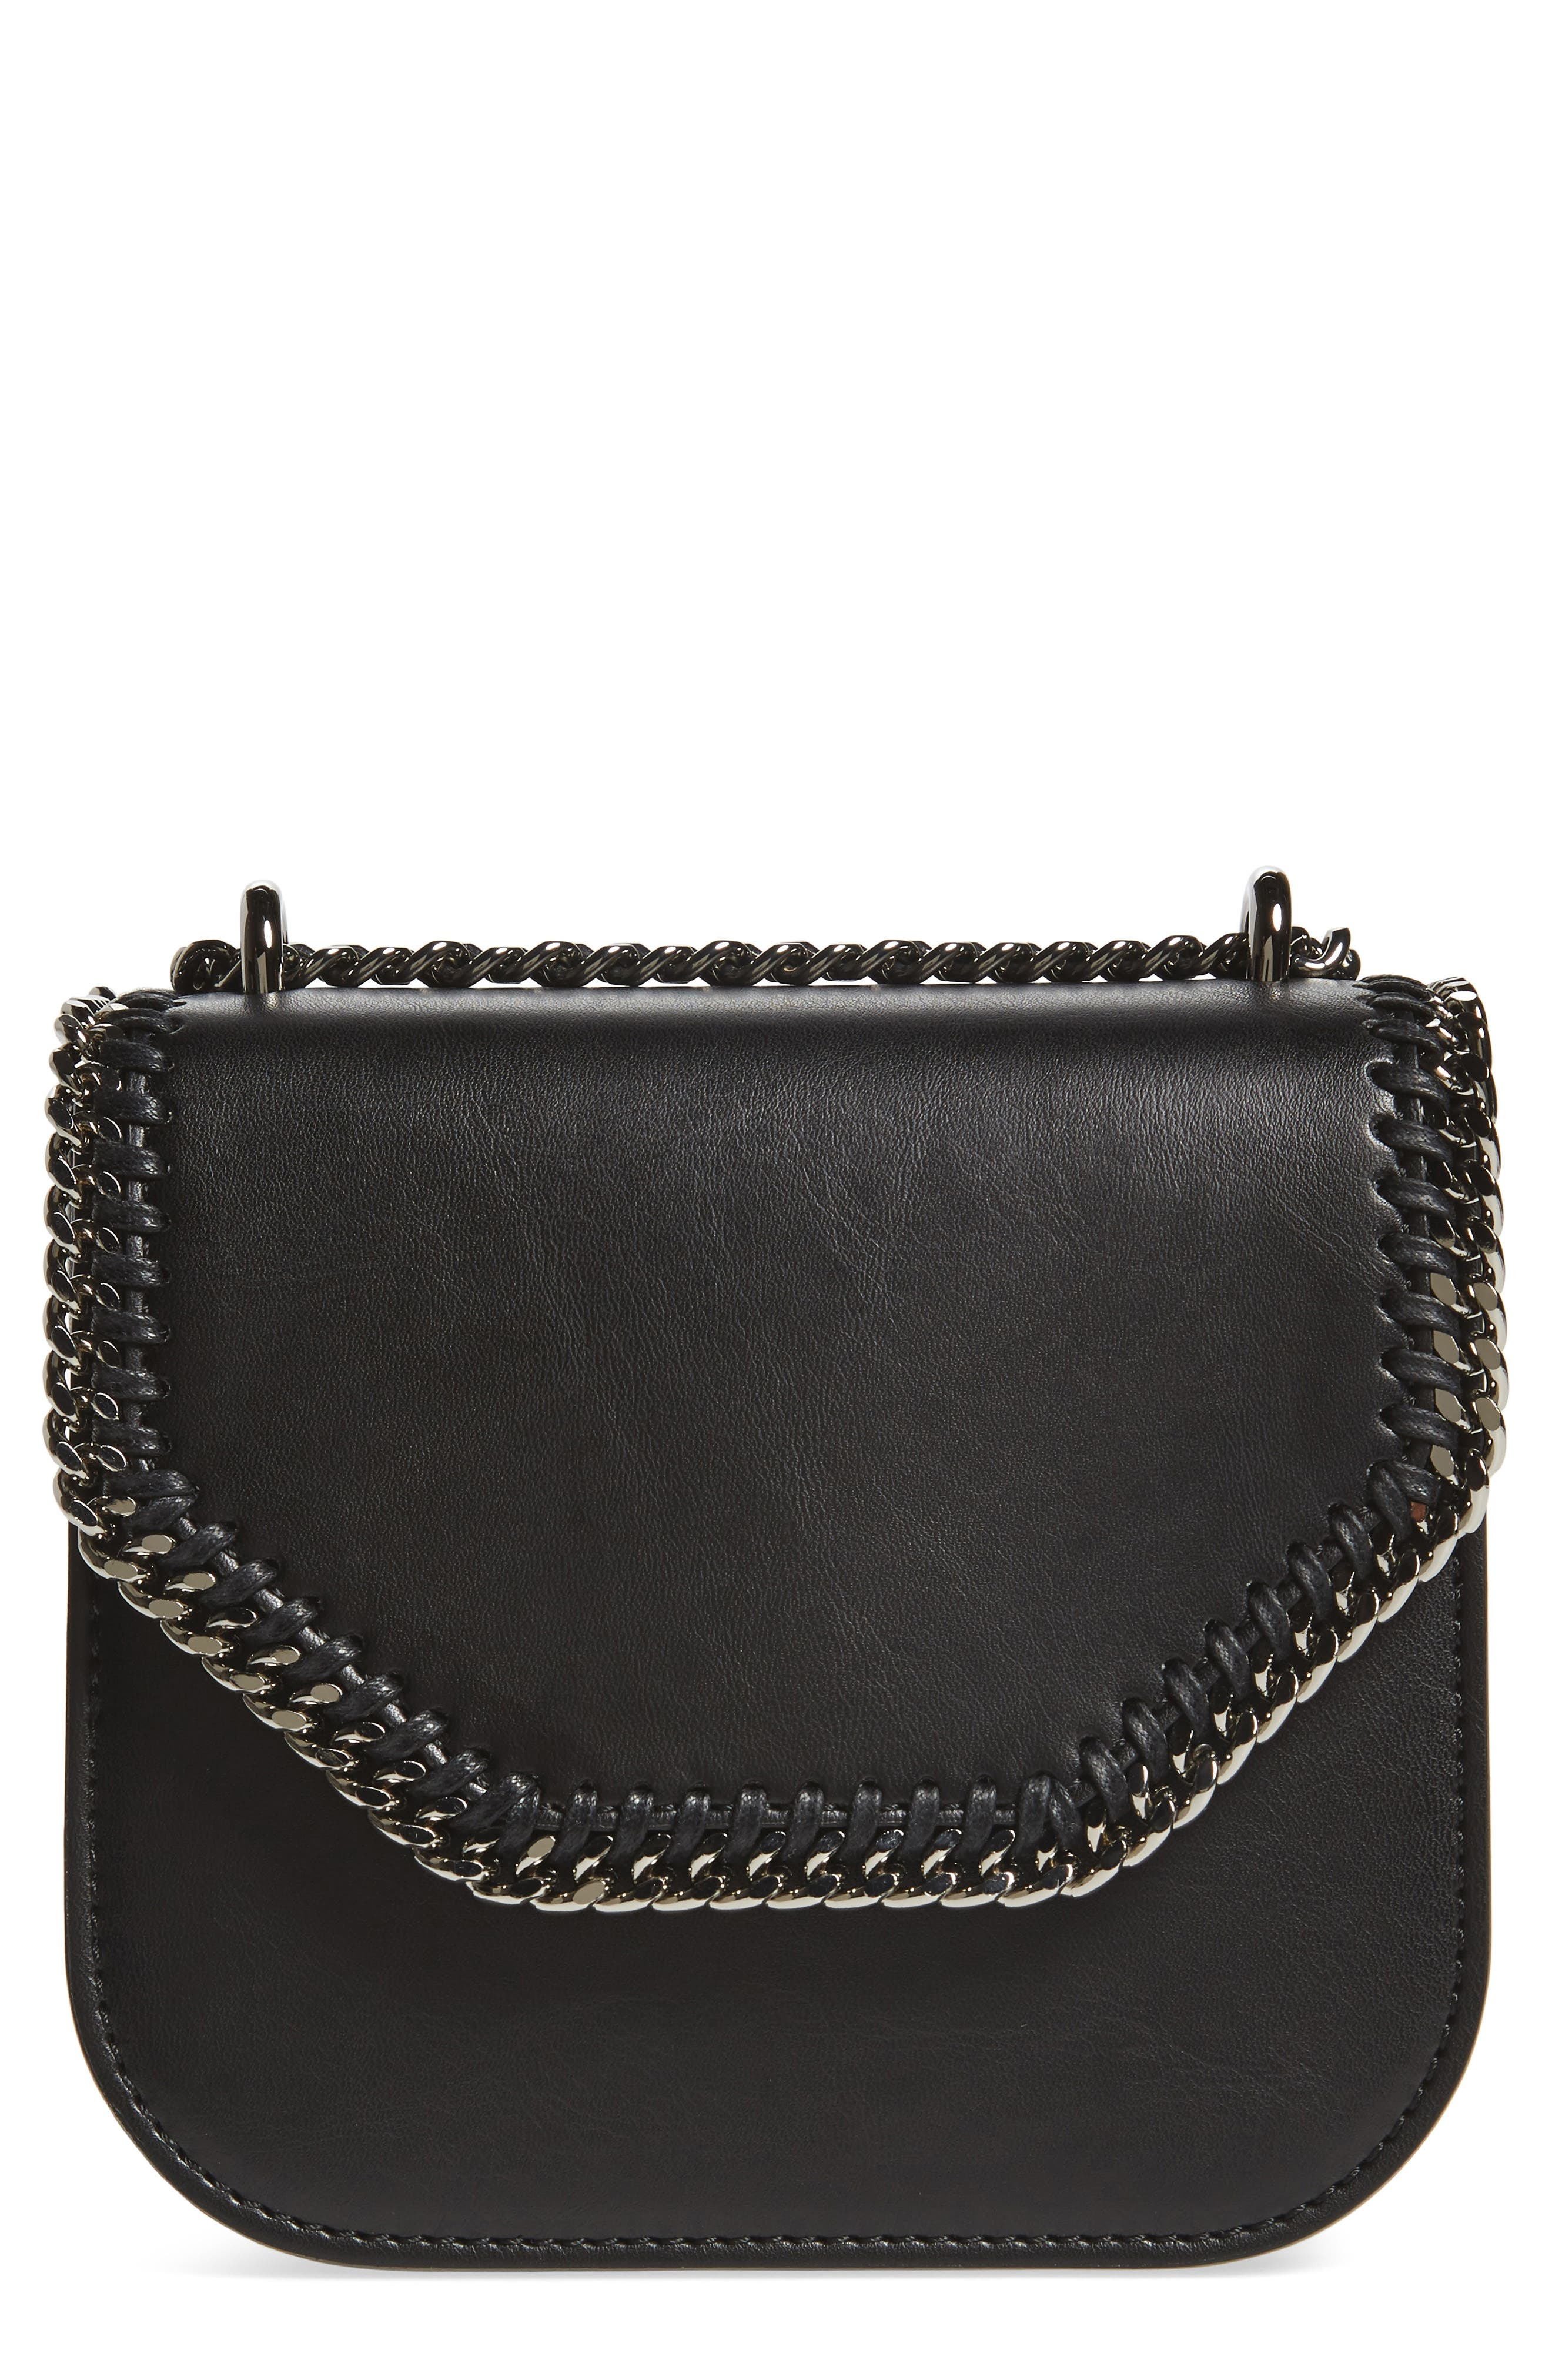 Main Image - Stella McCartney Small Falabella Box Alter Nappa Faux Leather Crossbody Bag